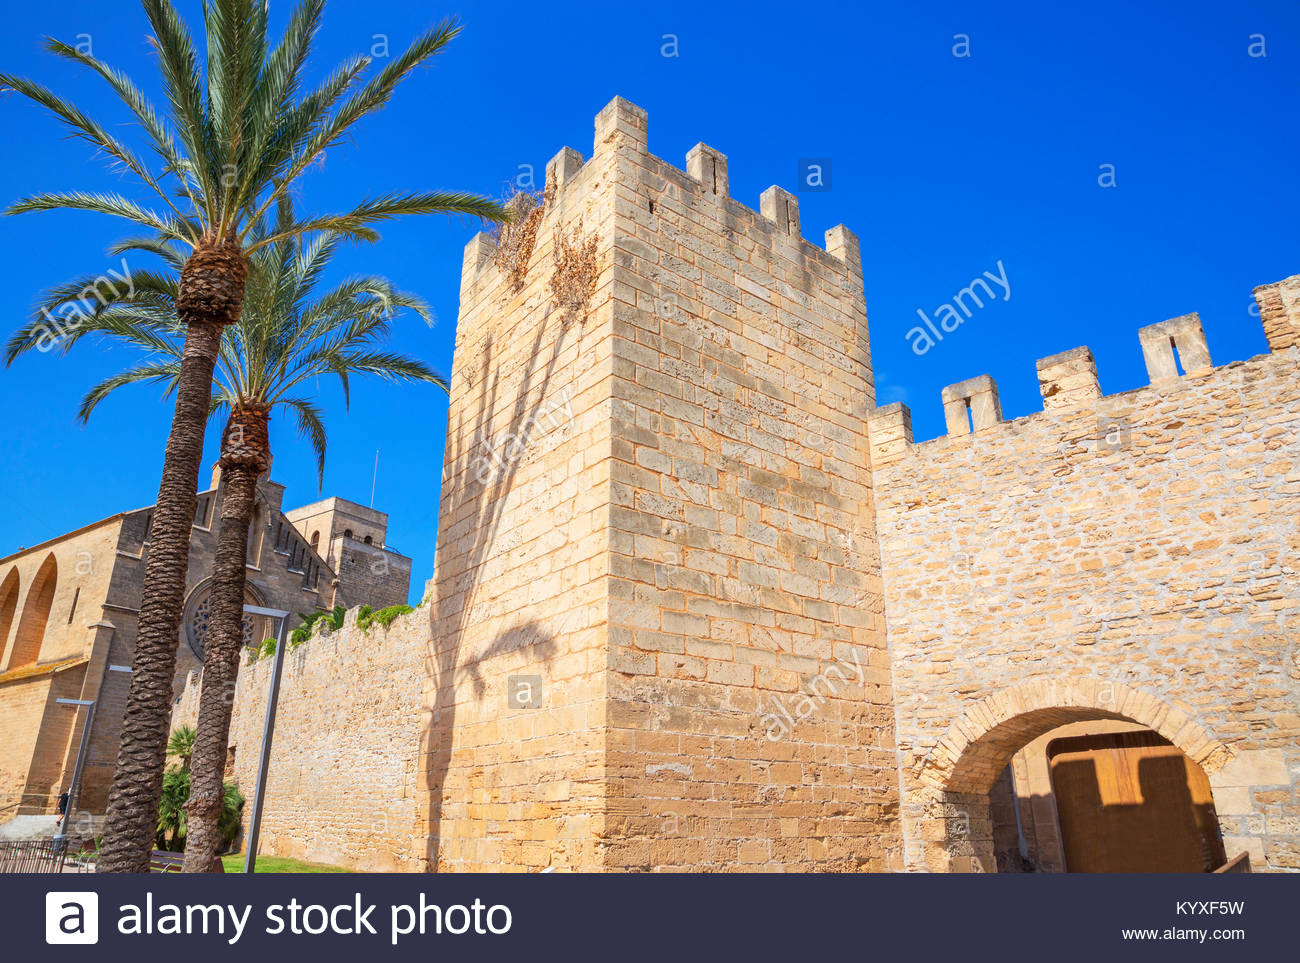 The medieval walls of Alcudia, Alcudia, Mallorca, Balearic Islands, Spain, Europe - Stock Image